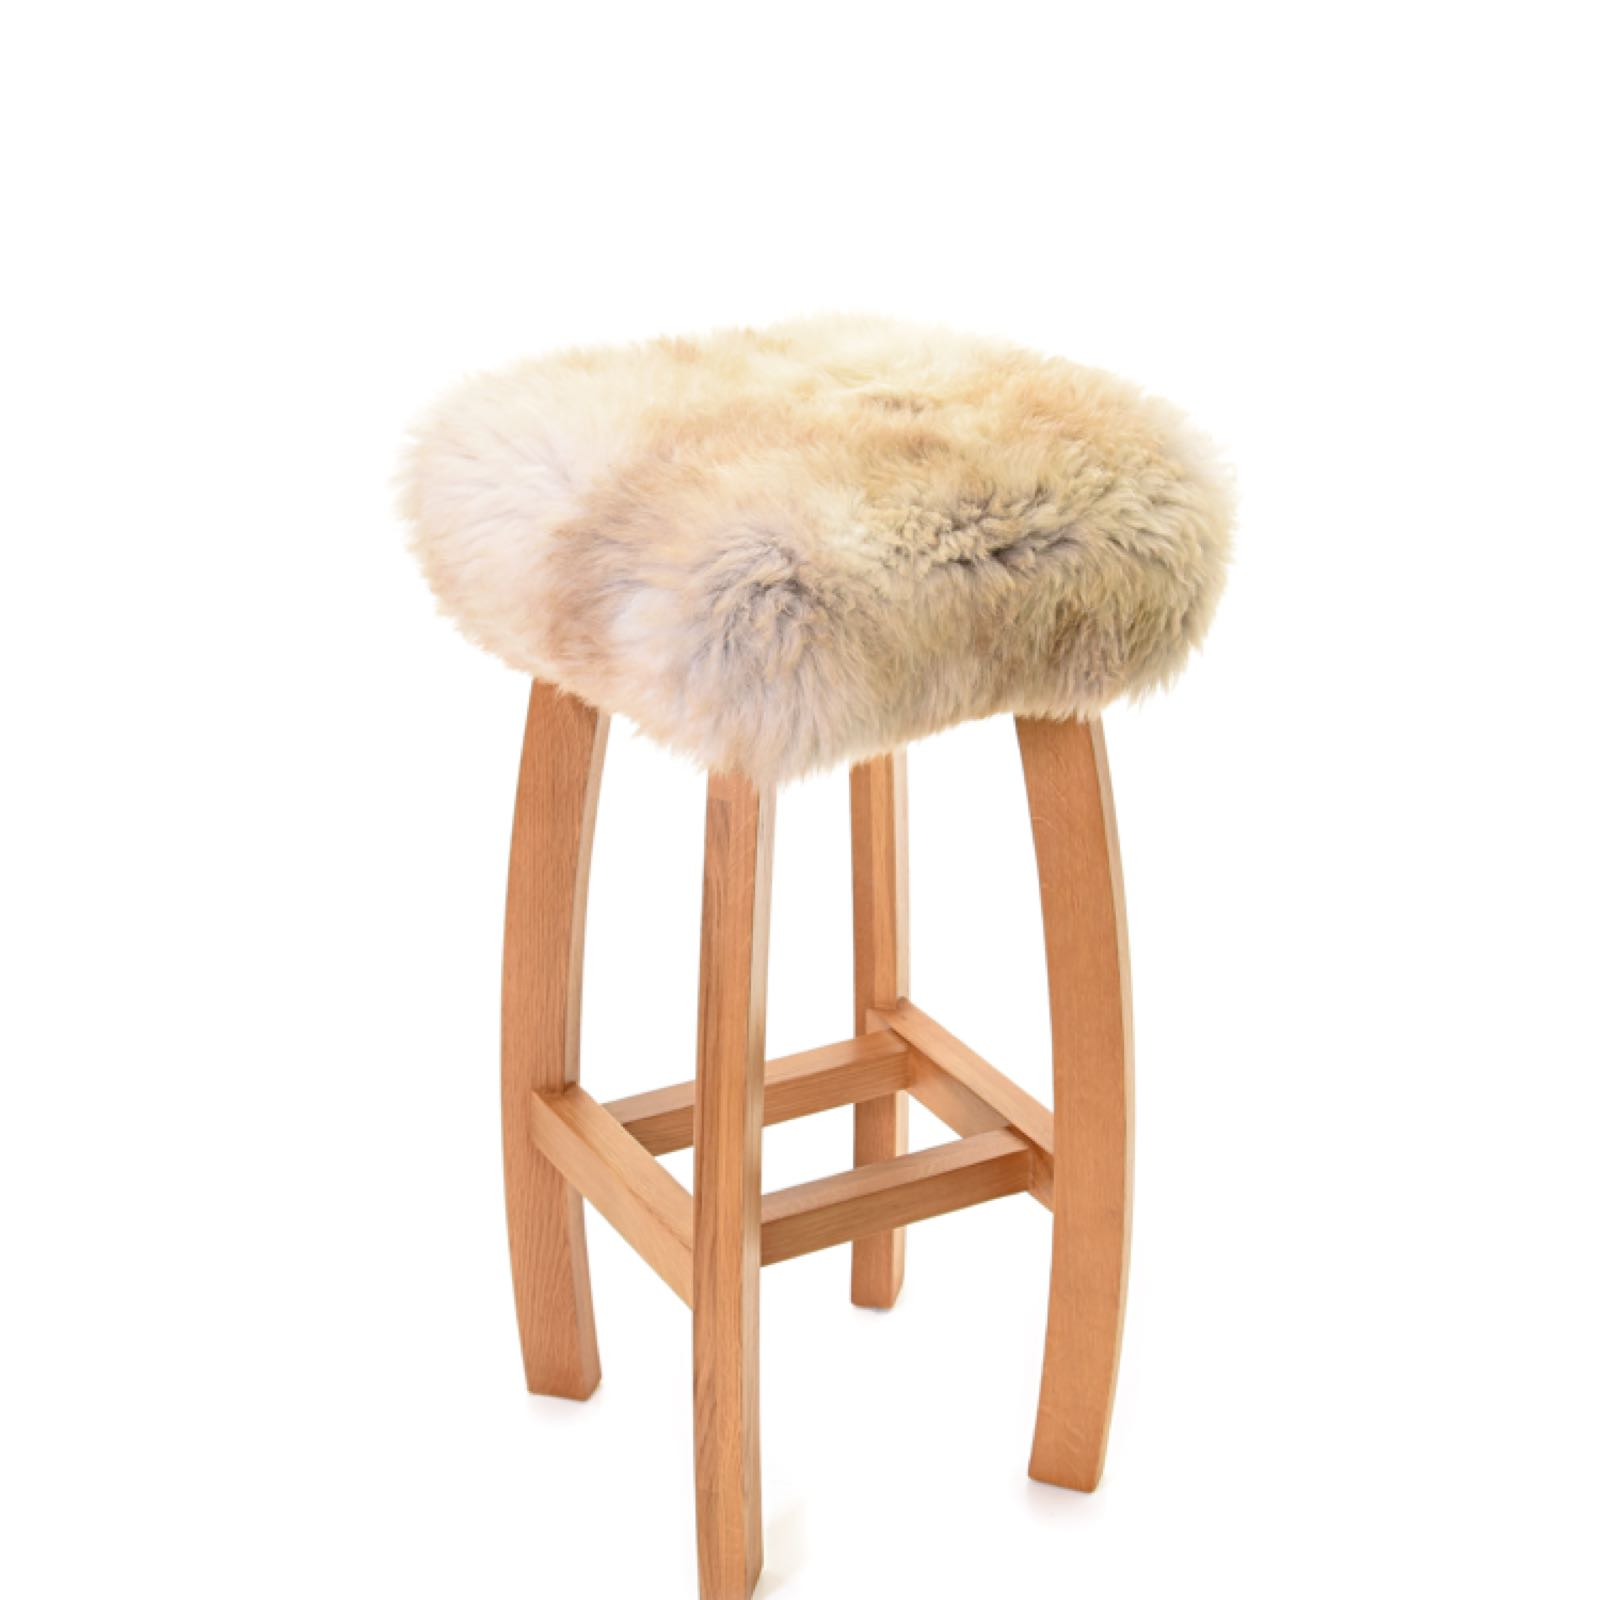 Baa bar stool Gwyn oak 175cm x 40cm